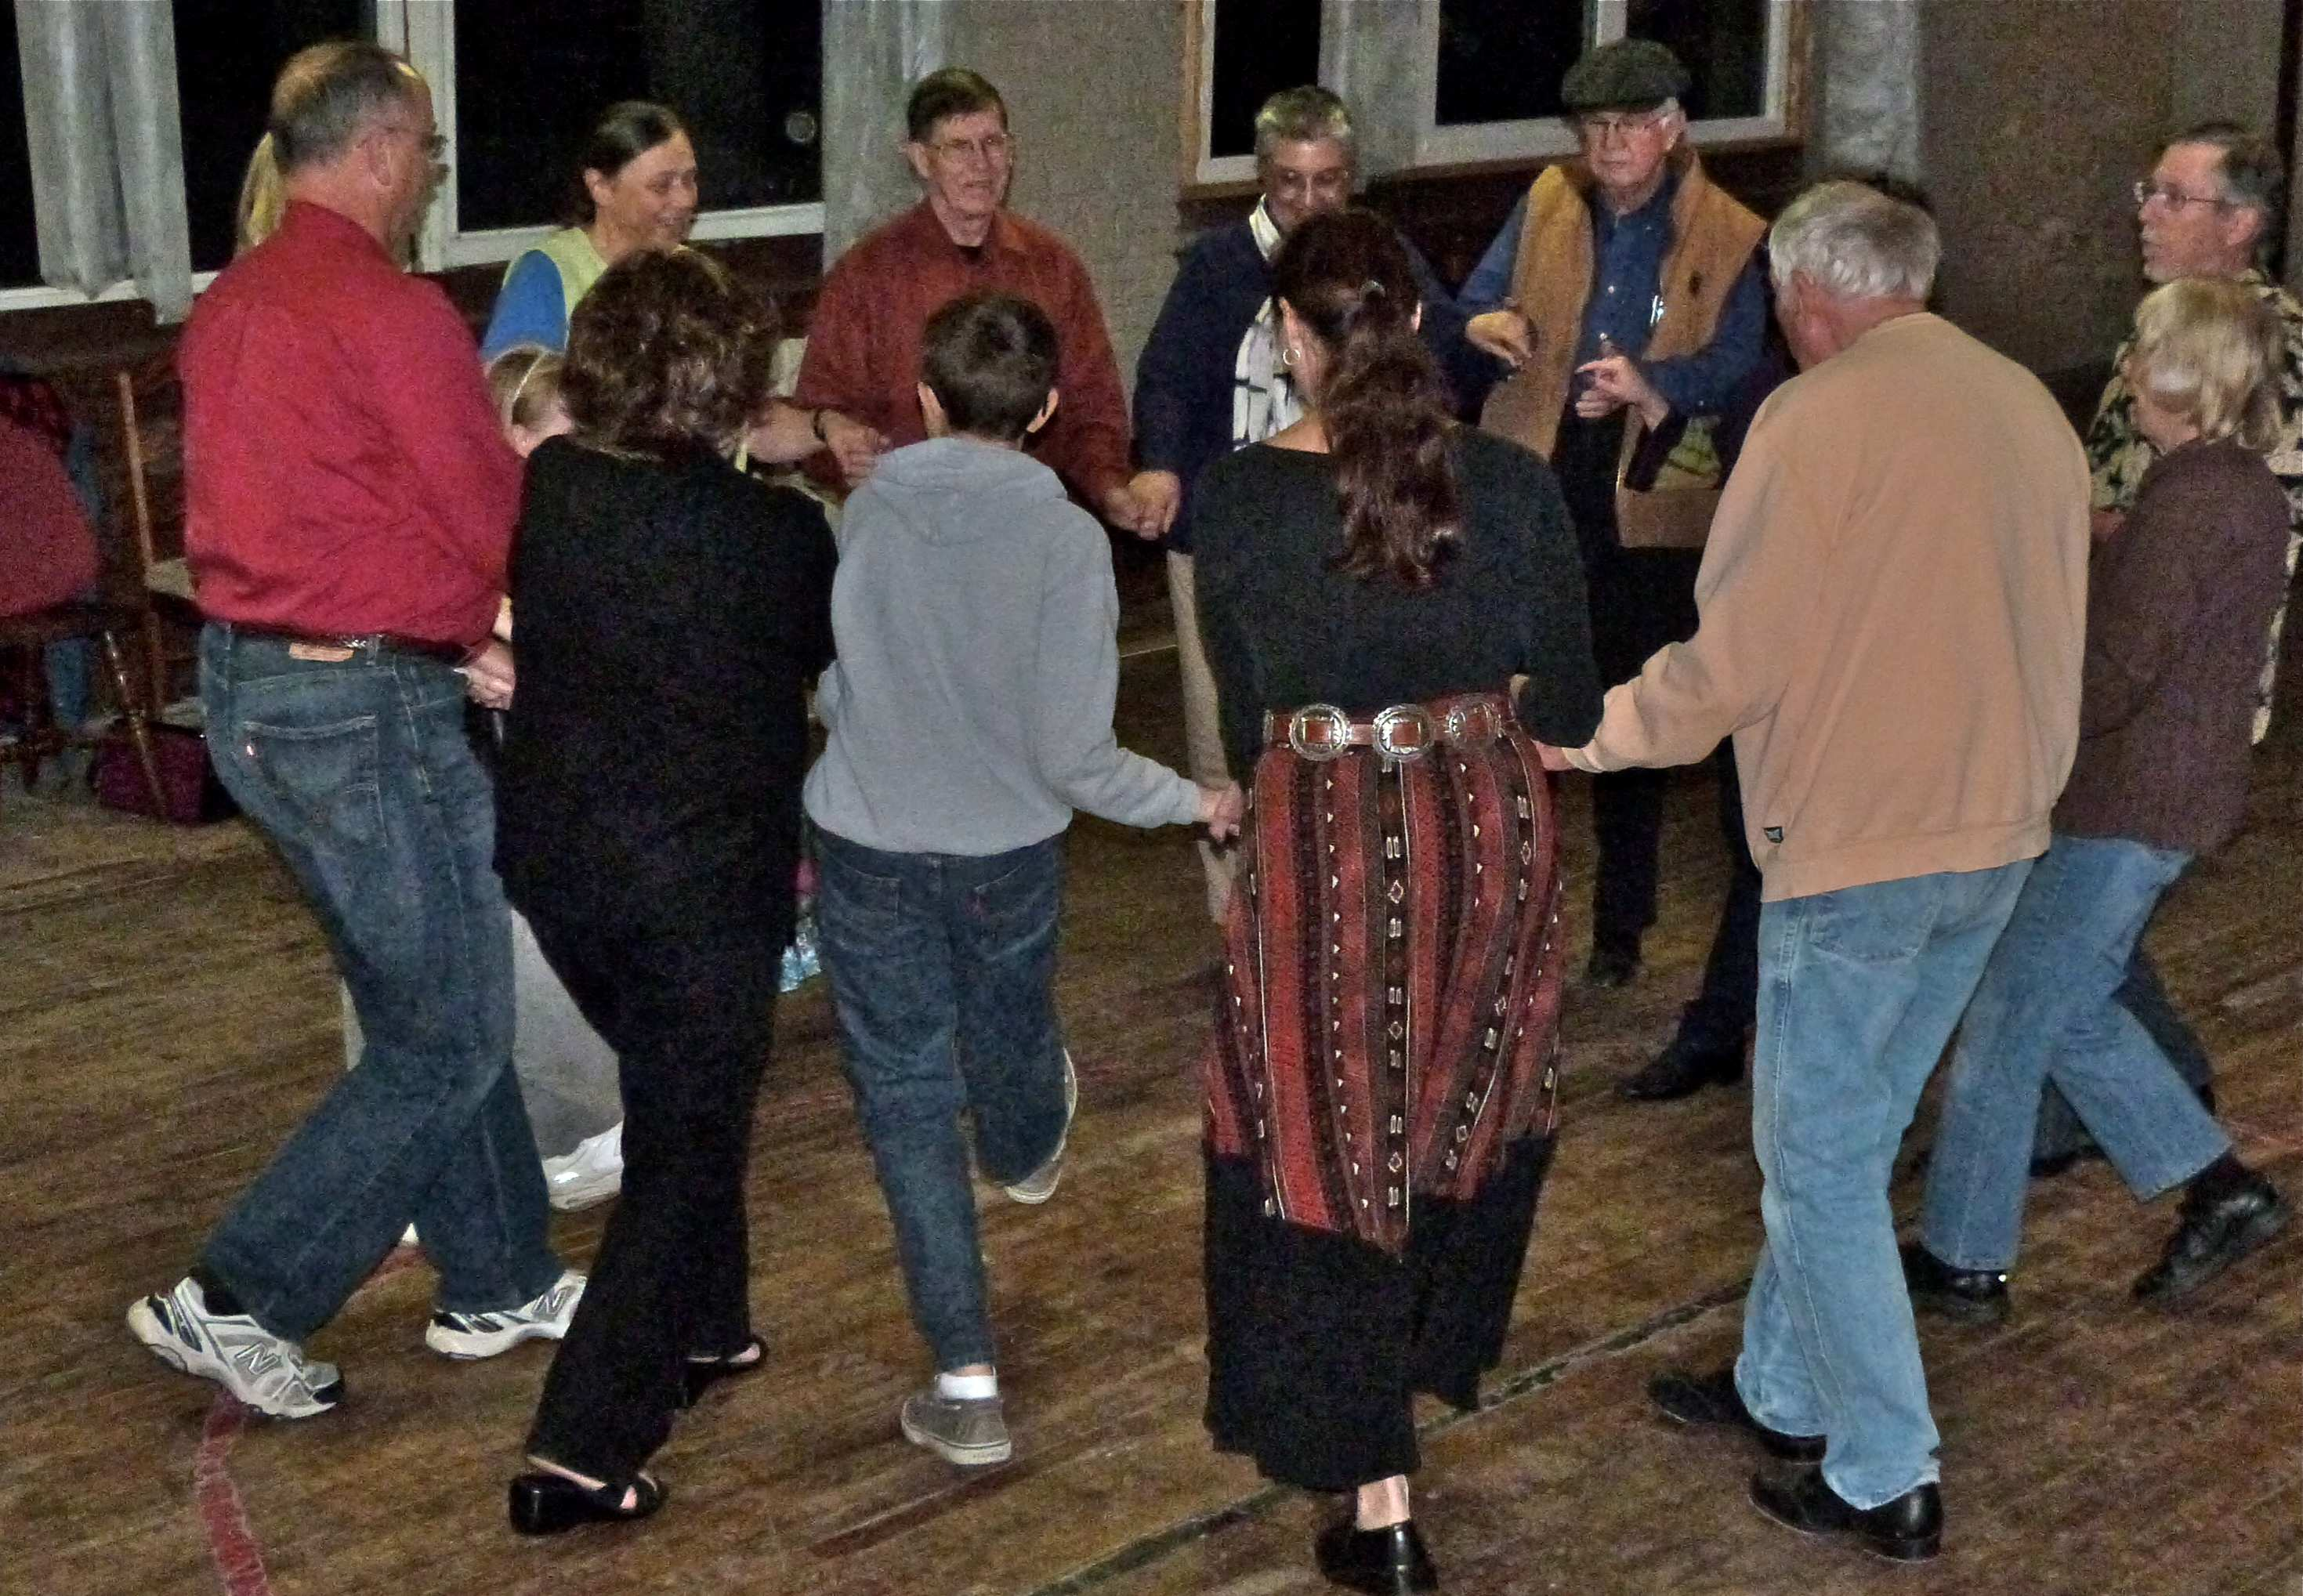 old time dance valparaiso indiana